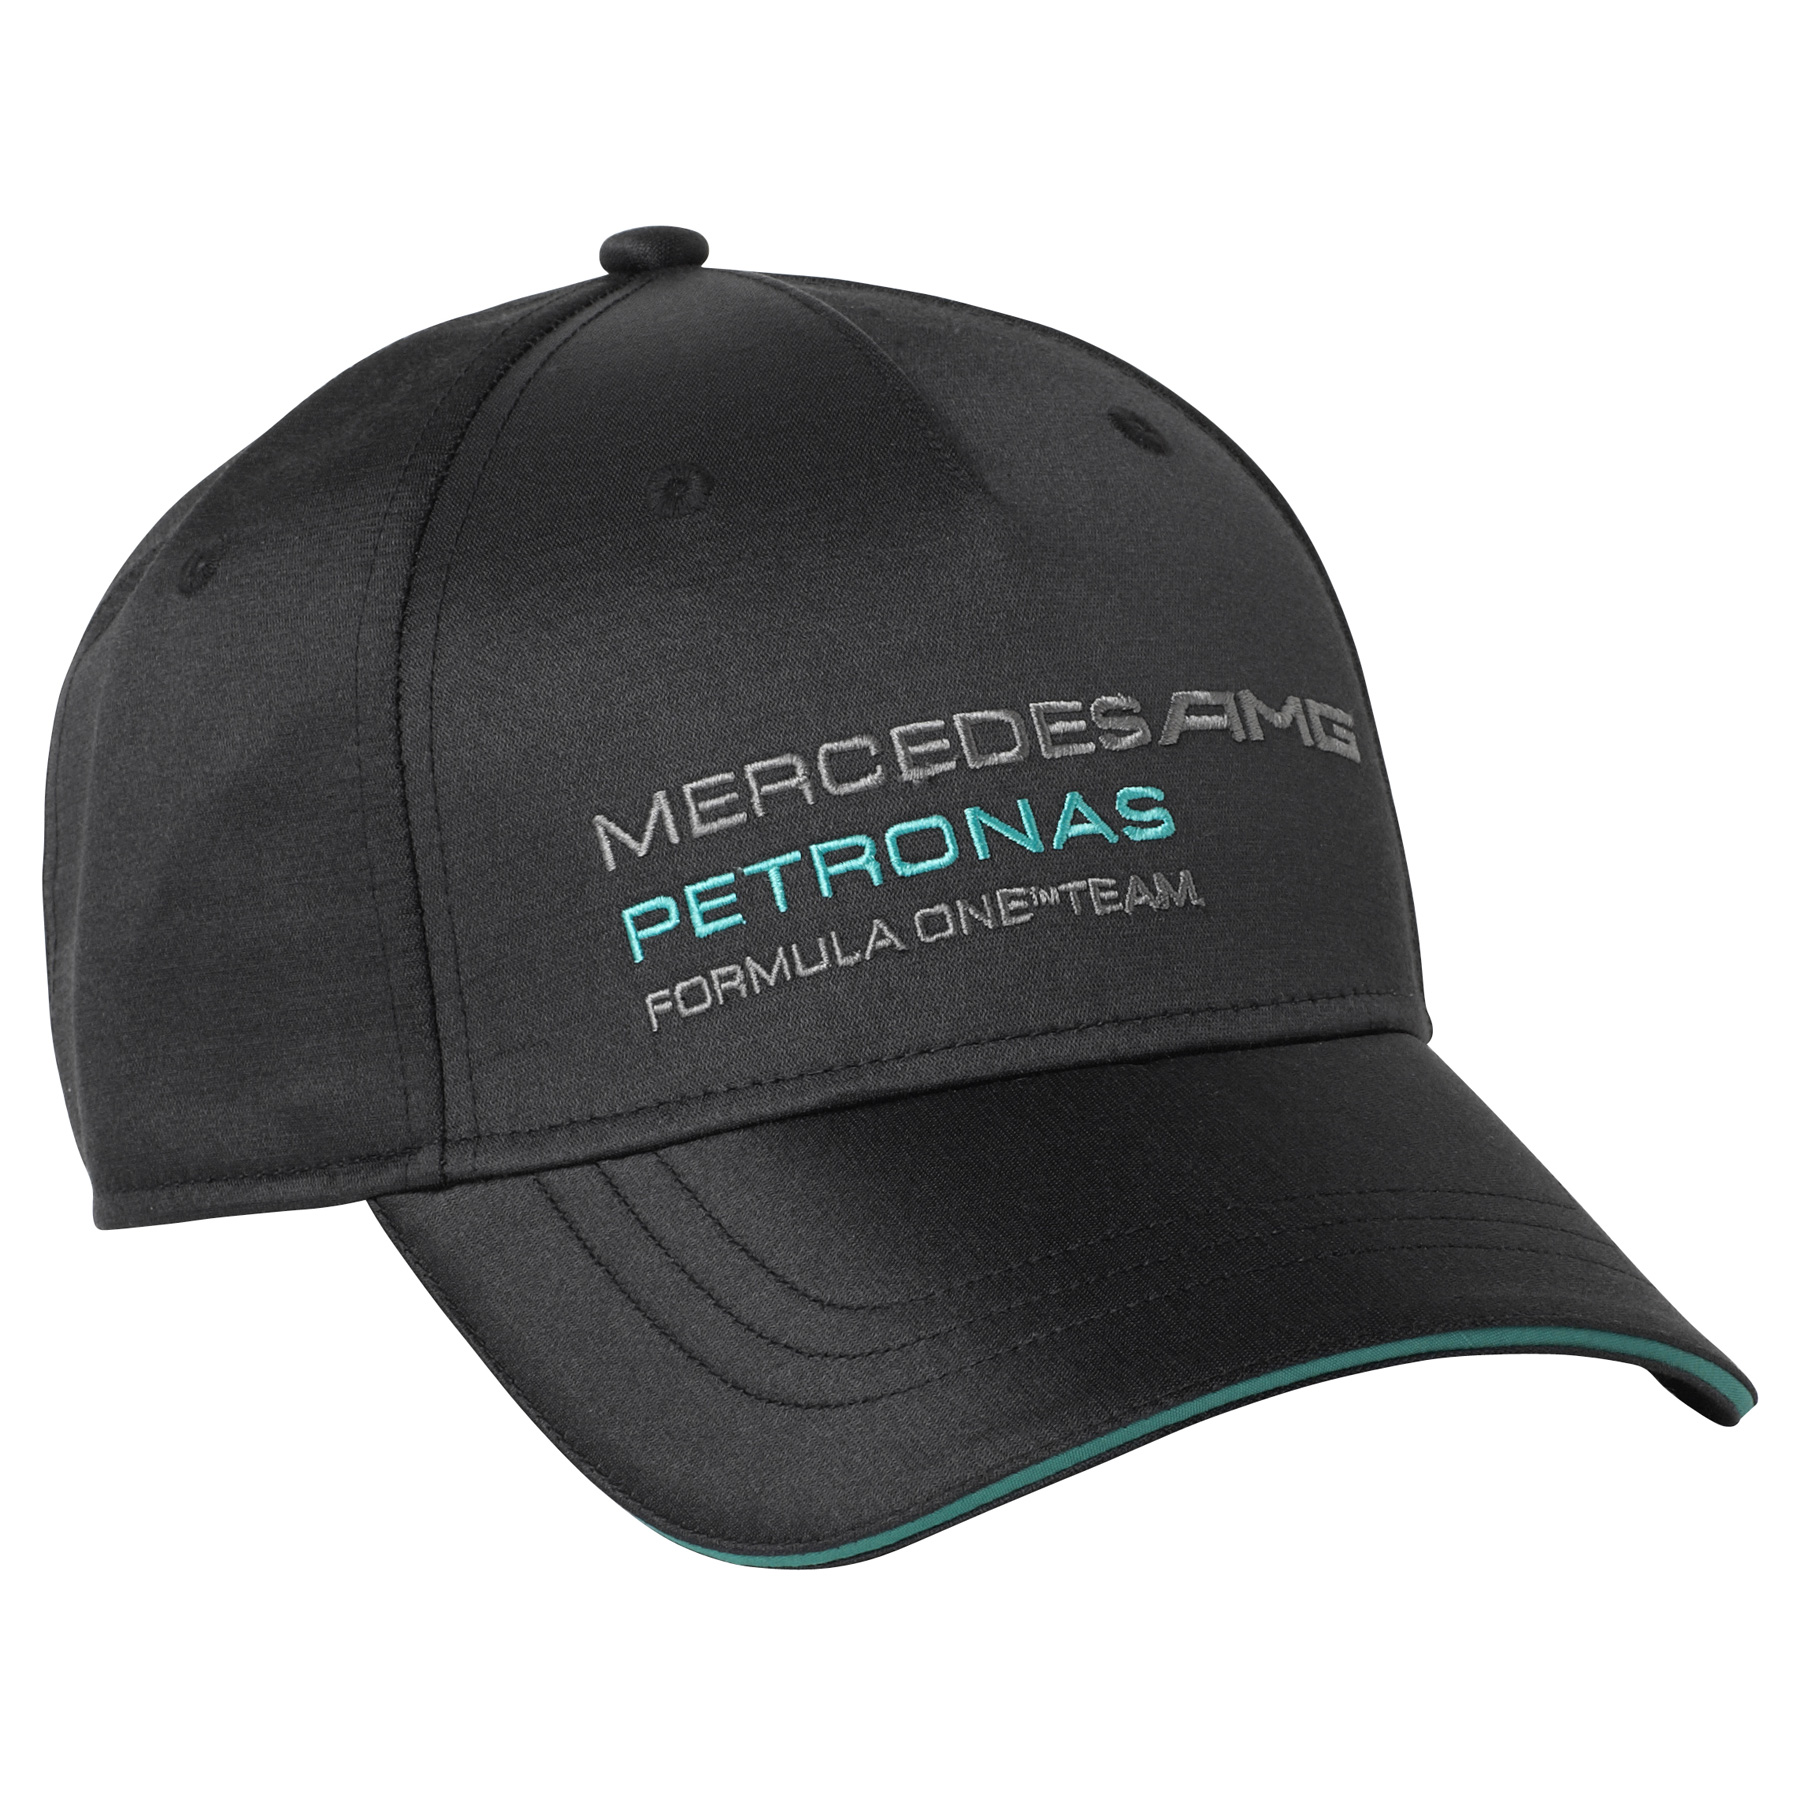 Sale mercedes amg petronas formula 1 f1 team fan cap for Mercedes benz hats sale